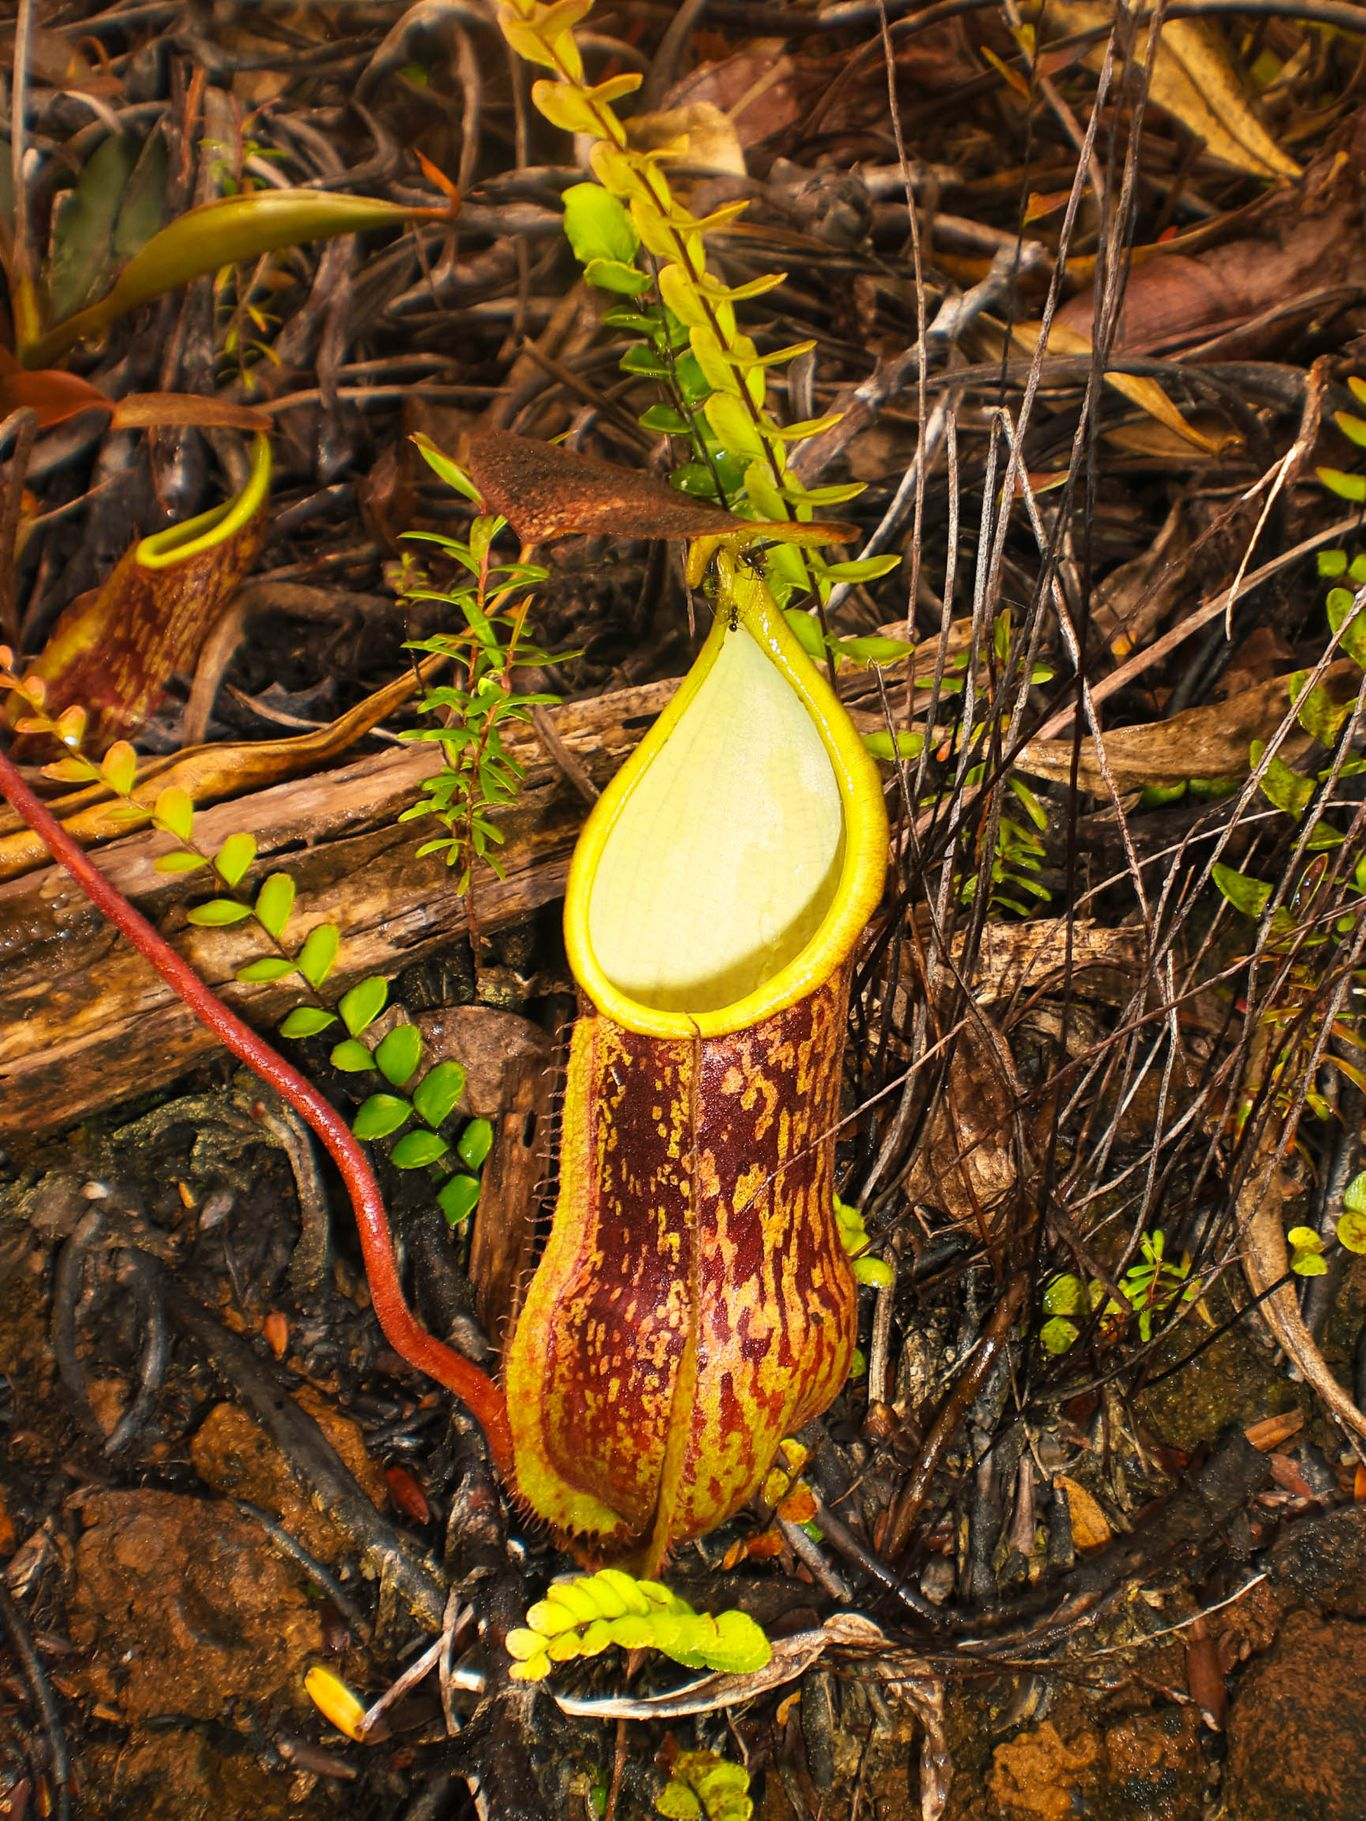 A brown-bodied pitcher plant at the Mount Hamiguitan Range Wildlife Sanctuary, one of the UNESCO World Heritage Sites in the Philippines